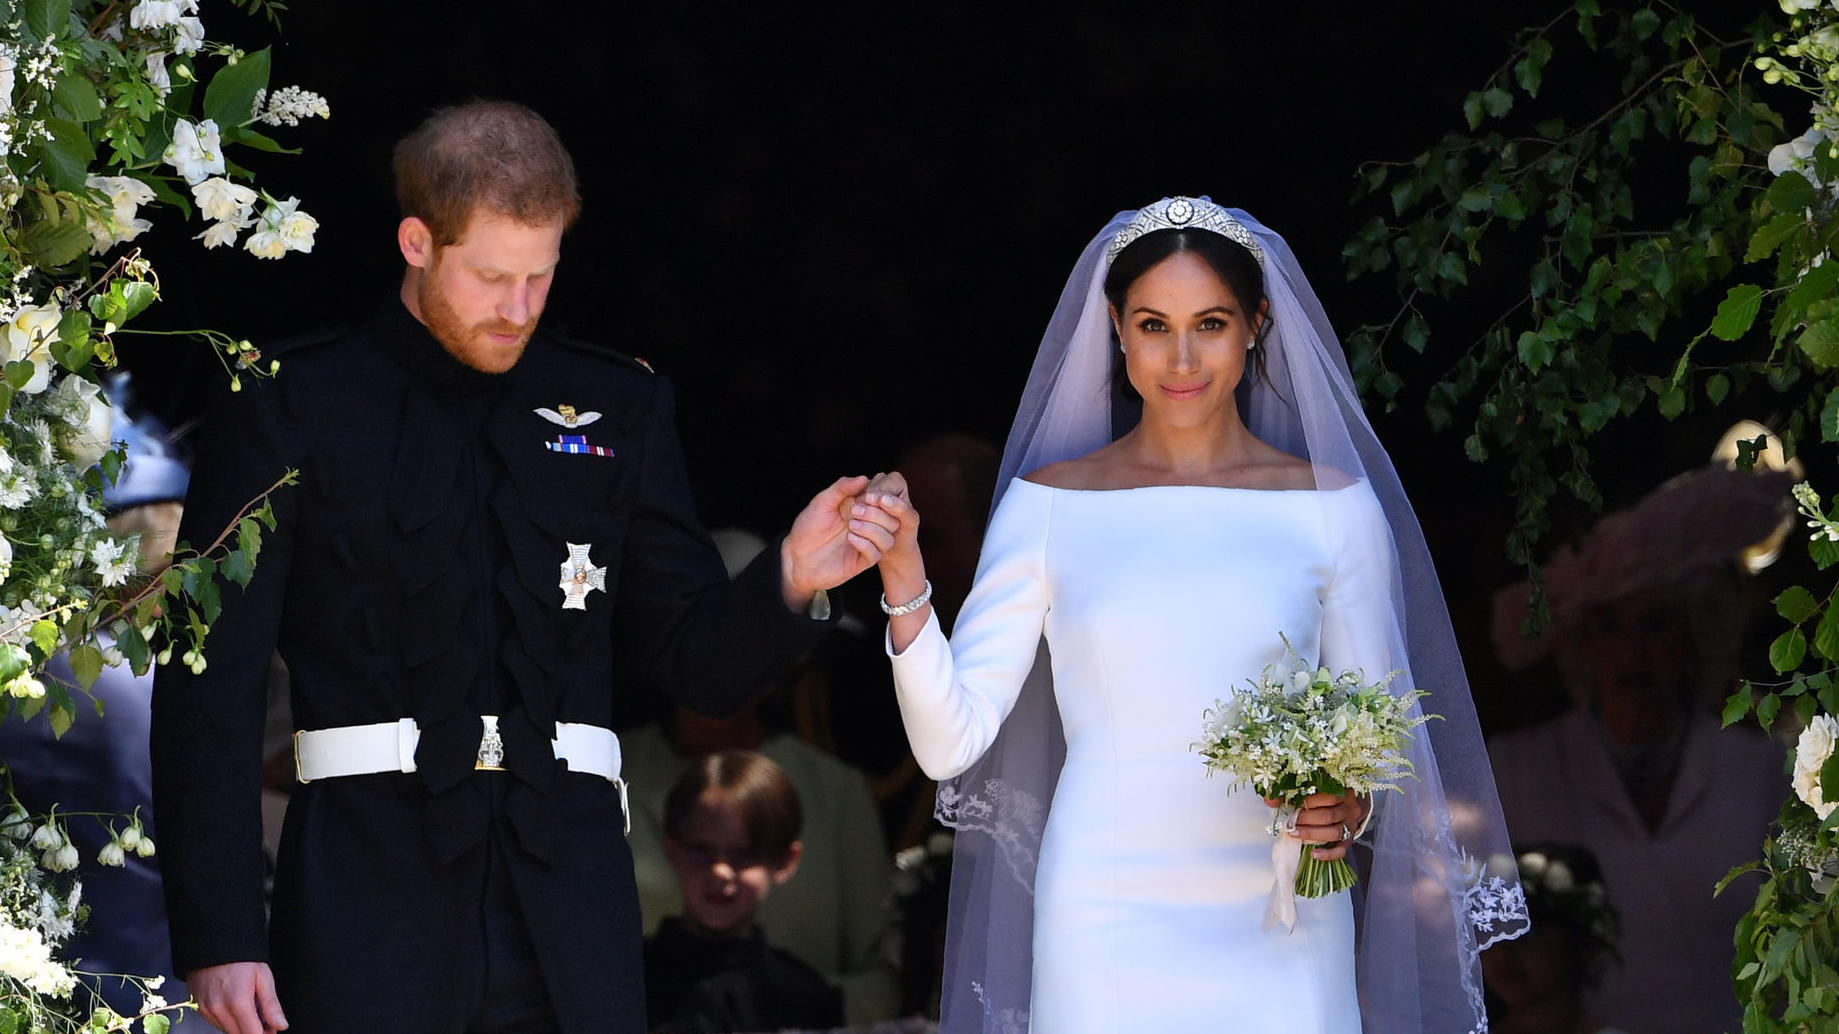 Am 19.05.2018 heiraten Harry und Meghan in Windsor